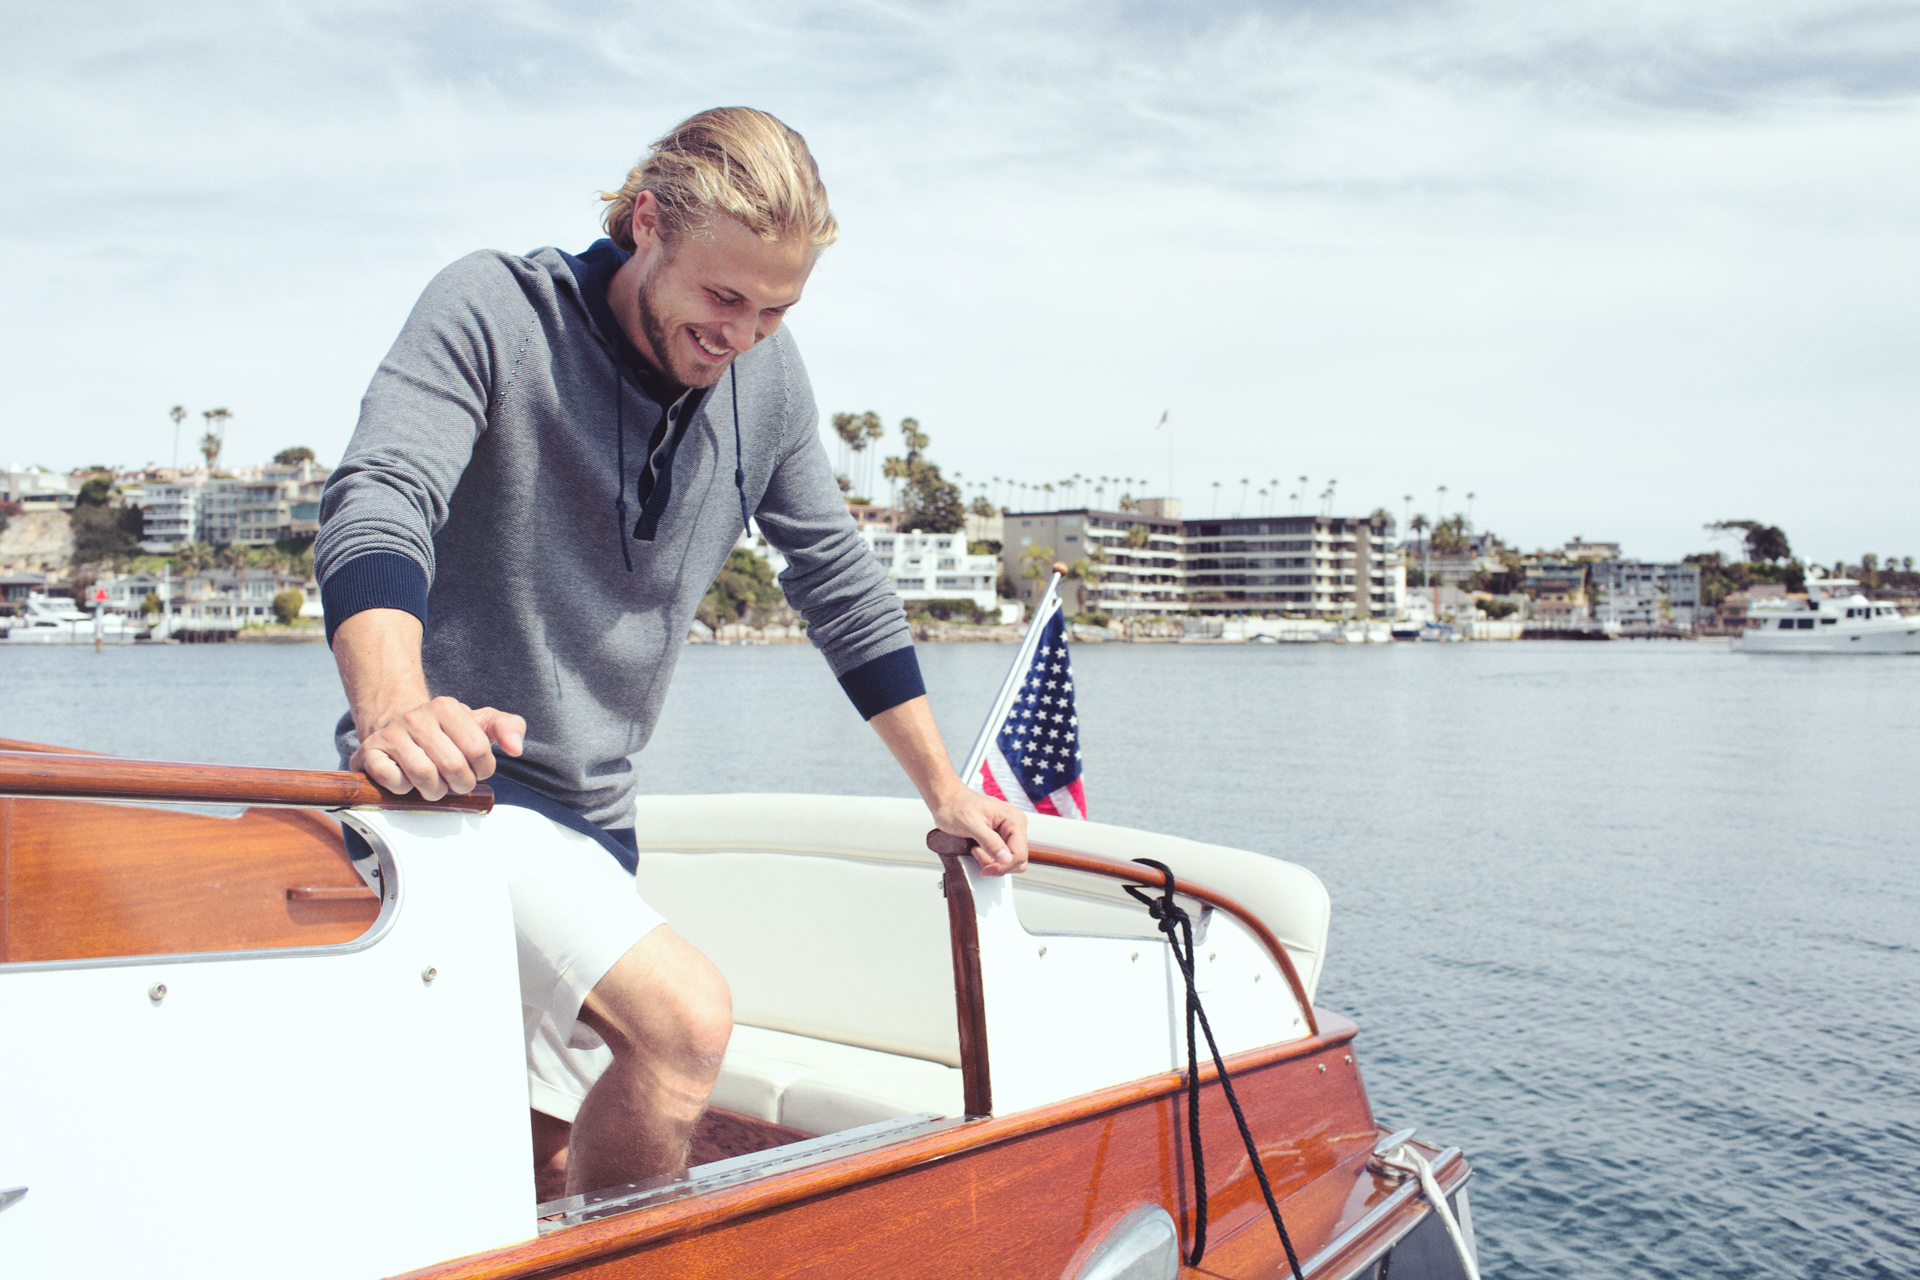 Mark DeLong - Lifestyle Photography - Man in a blue sweatshirt stepping off of a cris craft boat